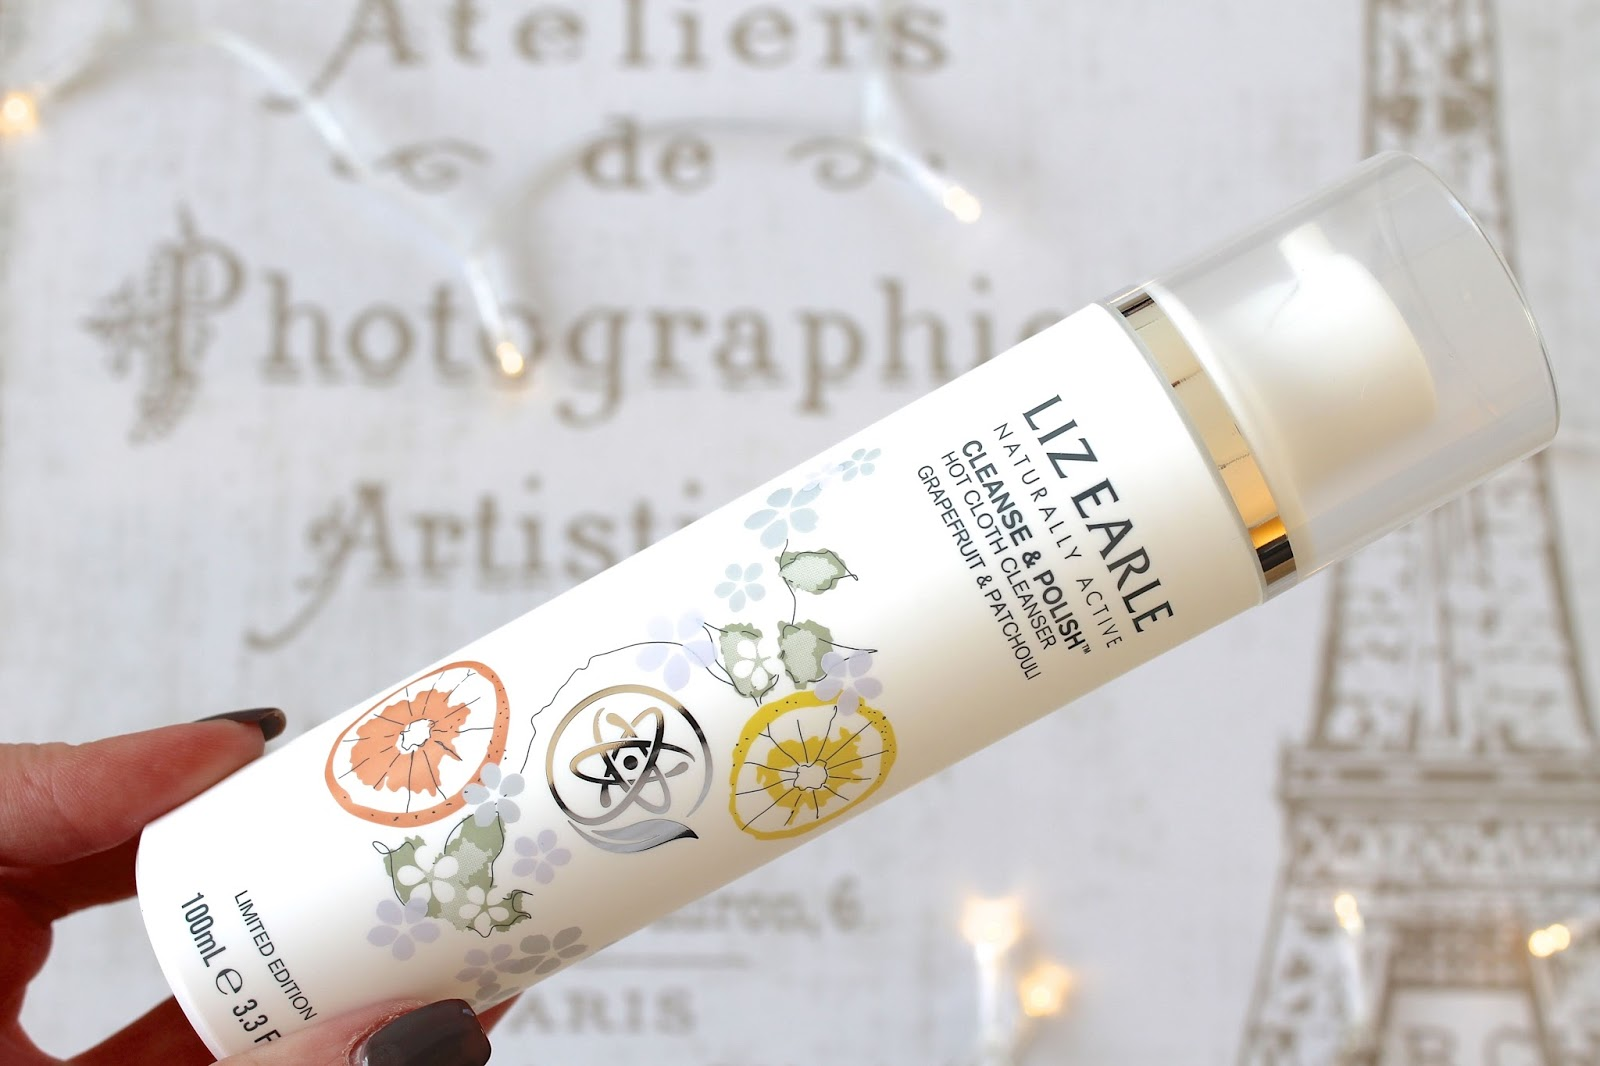 Liz Earle Cleanse & Polish first impressions